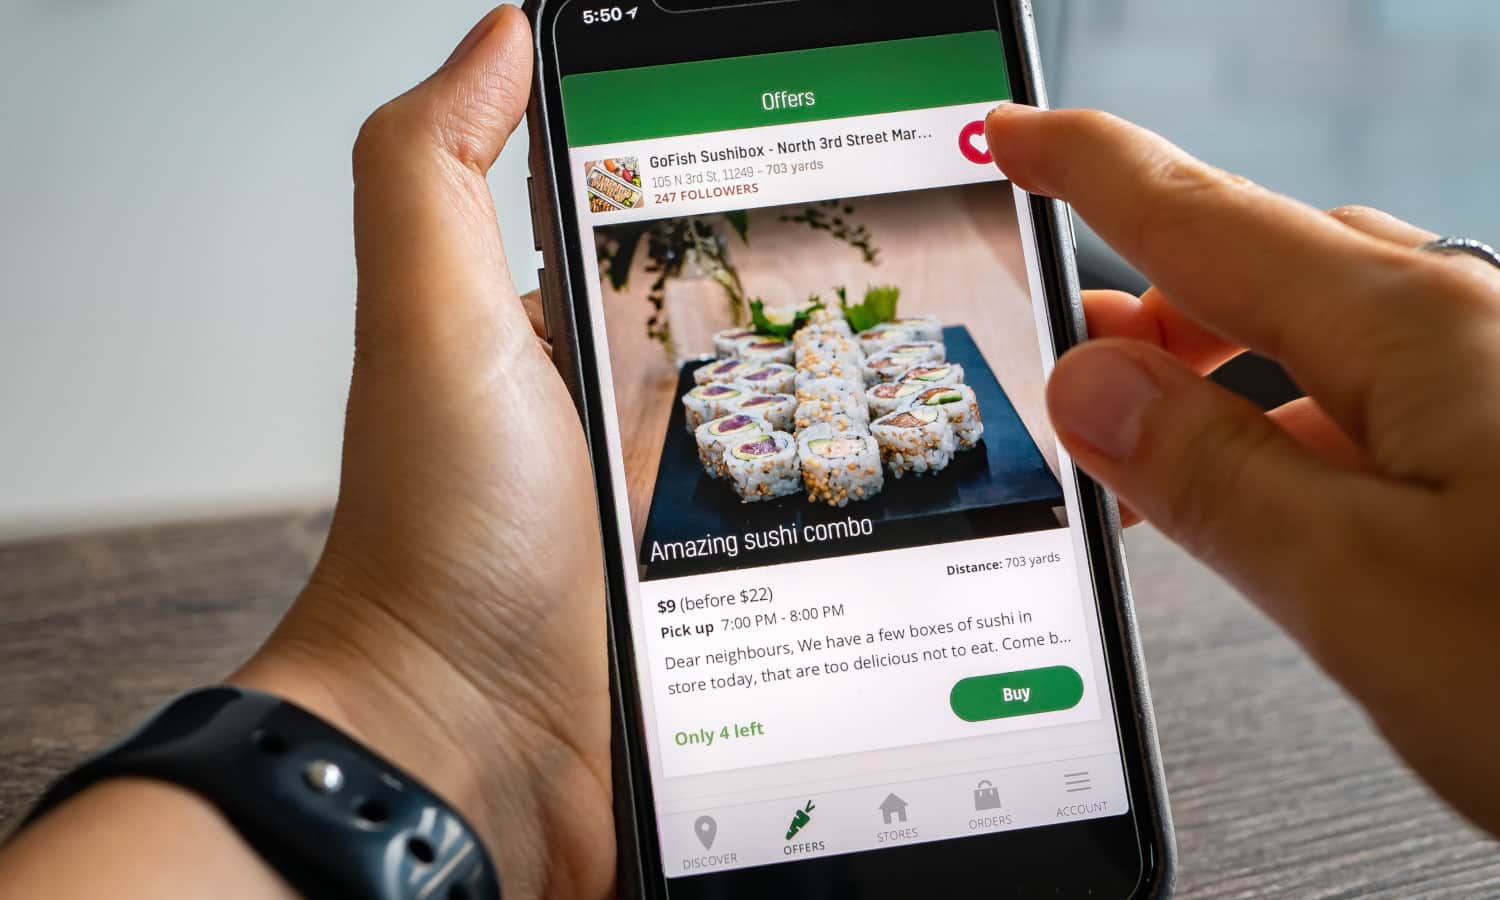 YourLocal app-based marketplace is a social enterprise benefiting your local retailers, consumers, and environment by selling potential food waste as discounted food surplus.